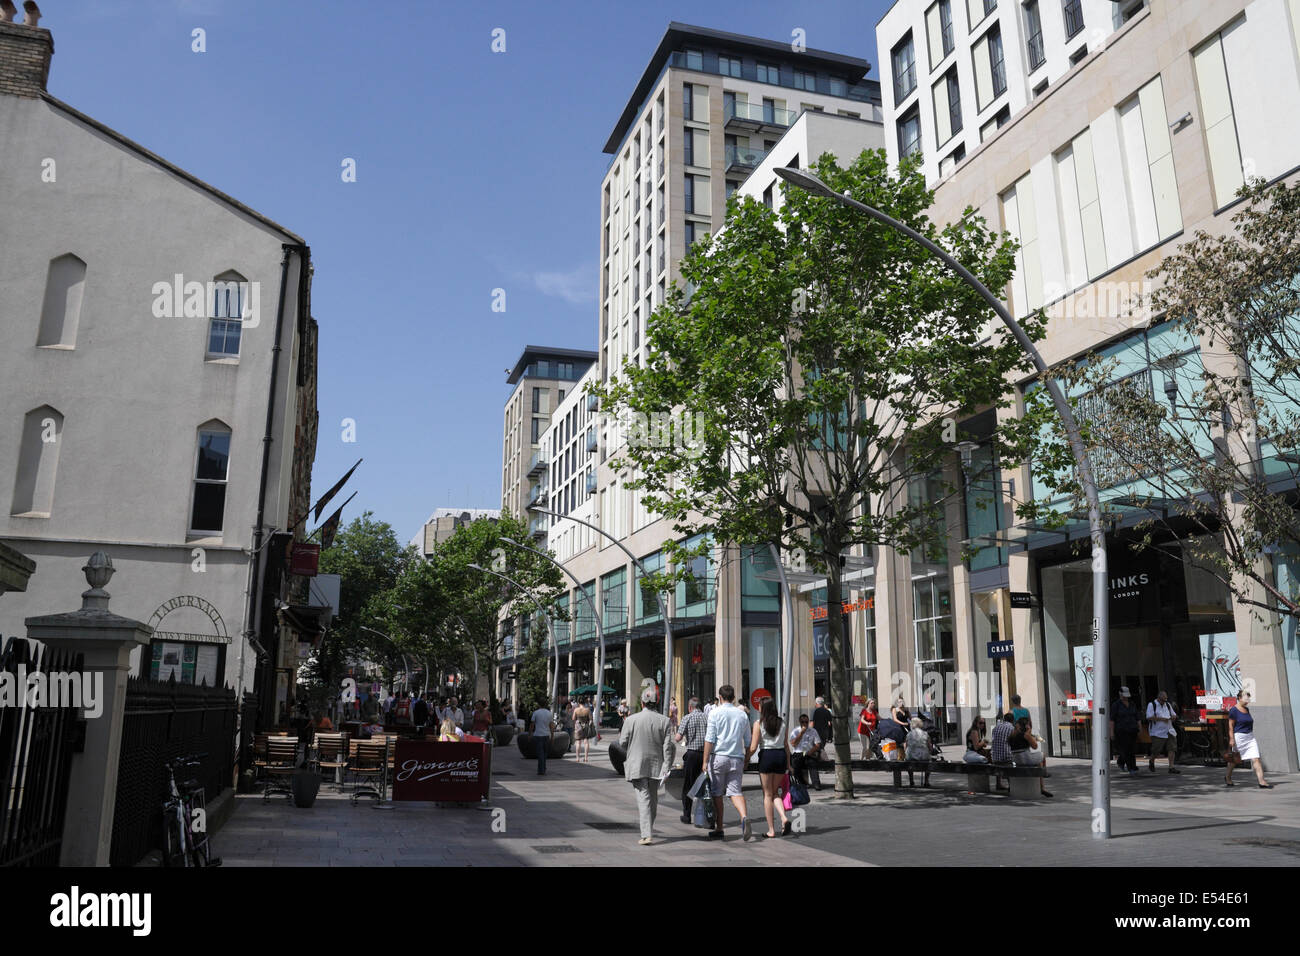 People walking on the Hayes shopping precinct in Cardiff city centre, Wales UK - Stock Image